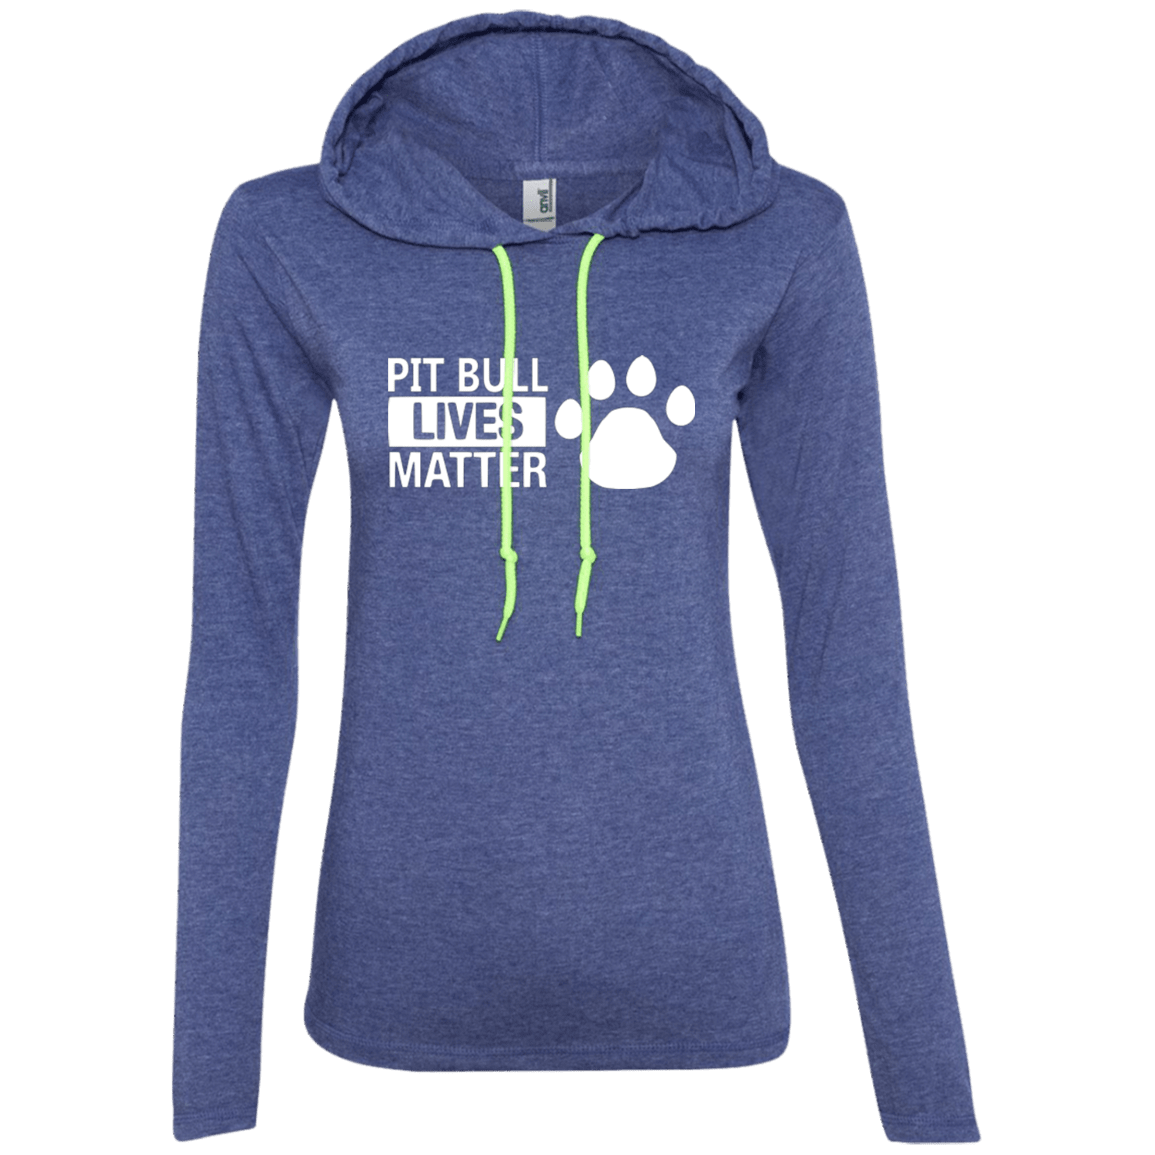 Pit Bull Lives Matter - 887L Anvil Ladies' LS T-Shirt Hoodie Heather Blue/Neon Yellow Small - Little Pit Shop